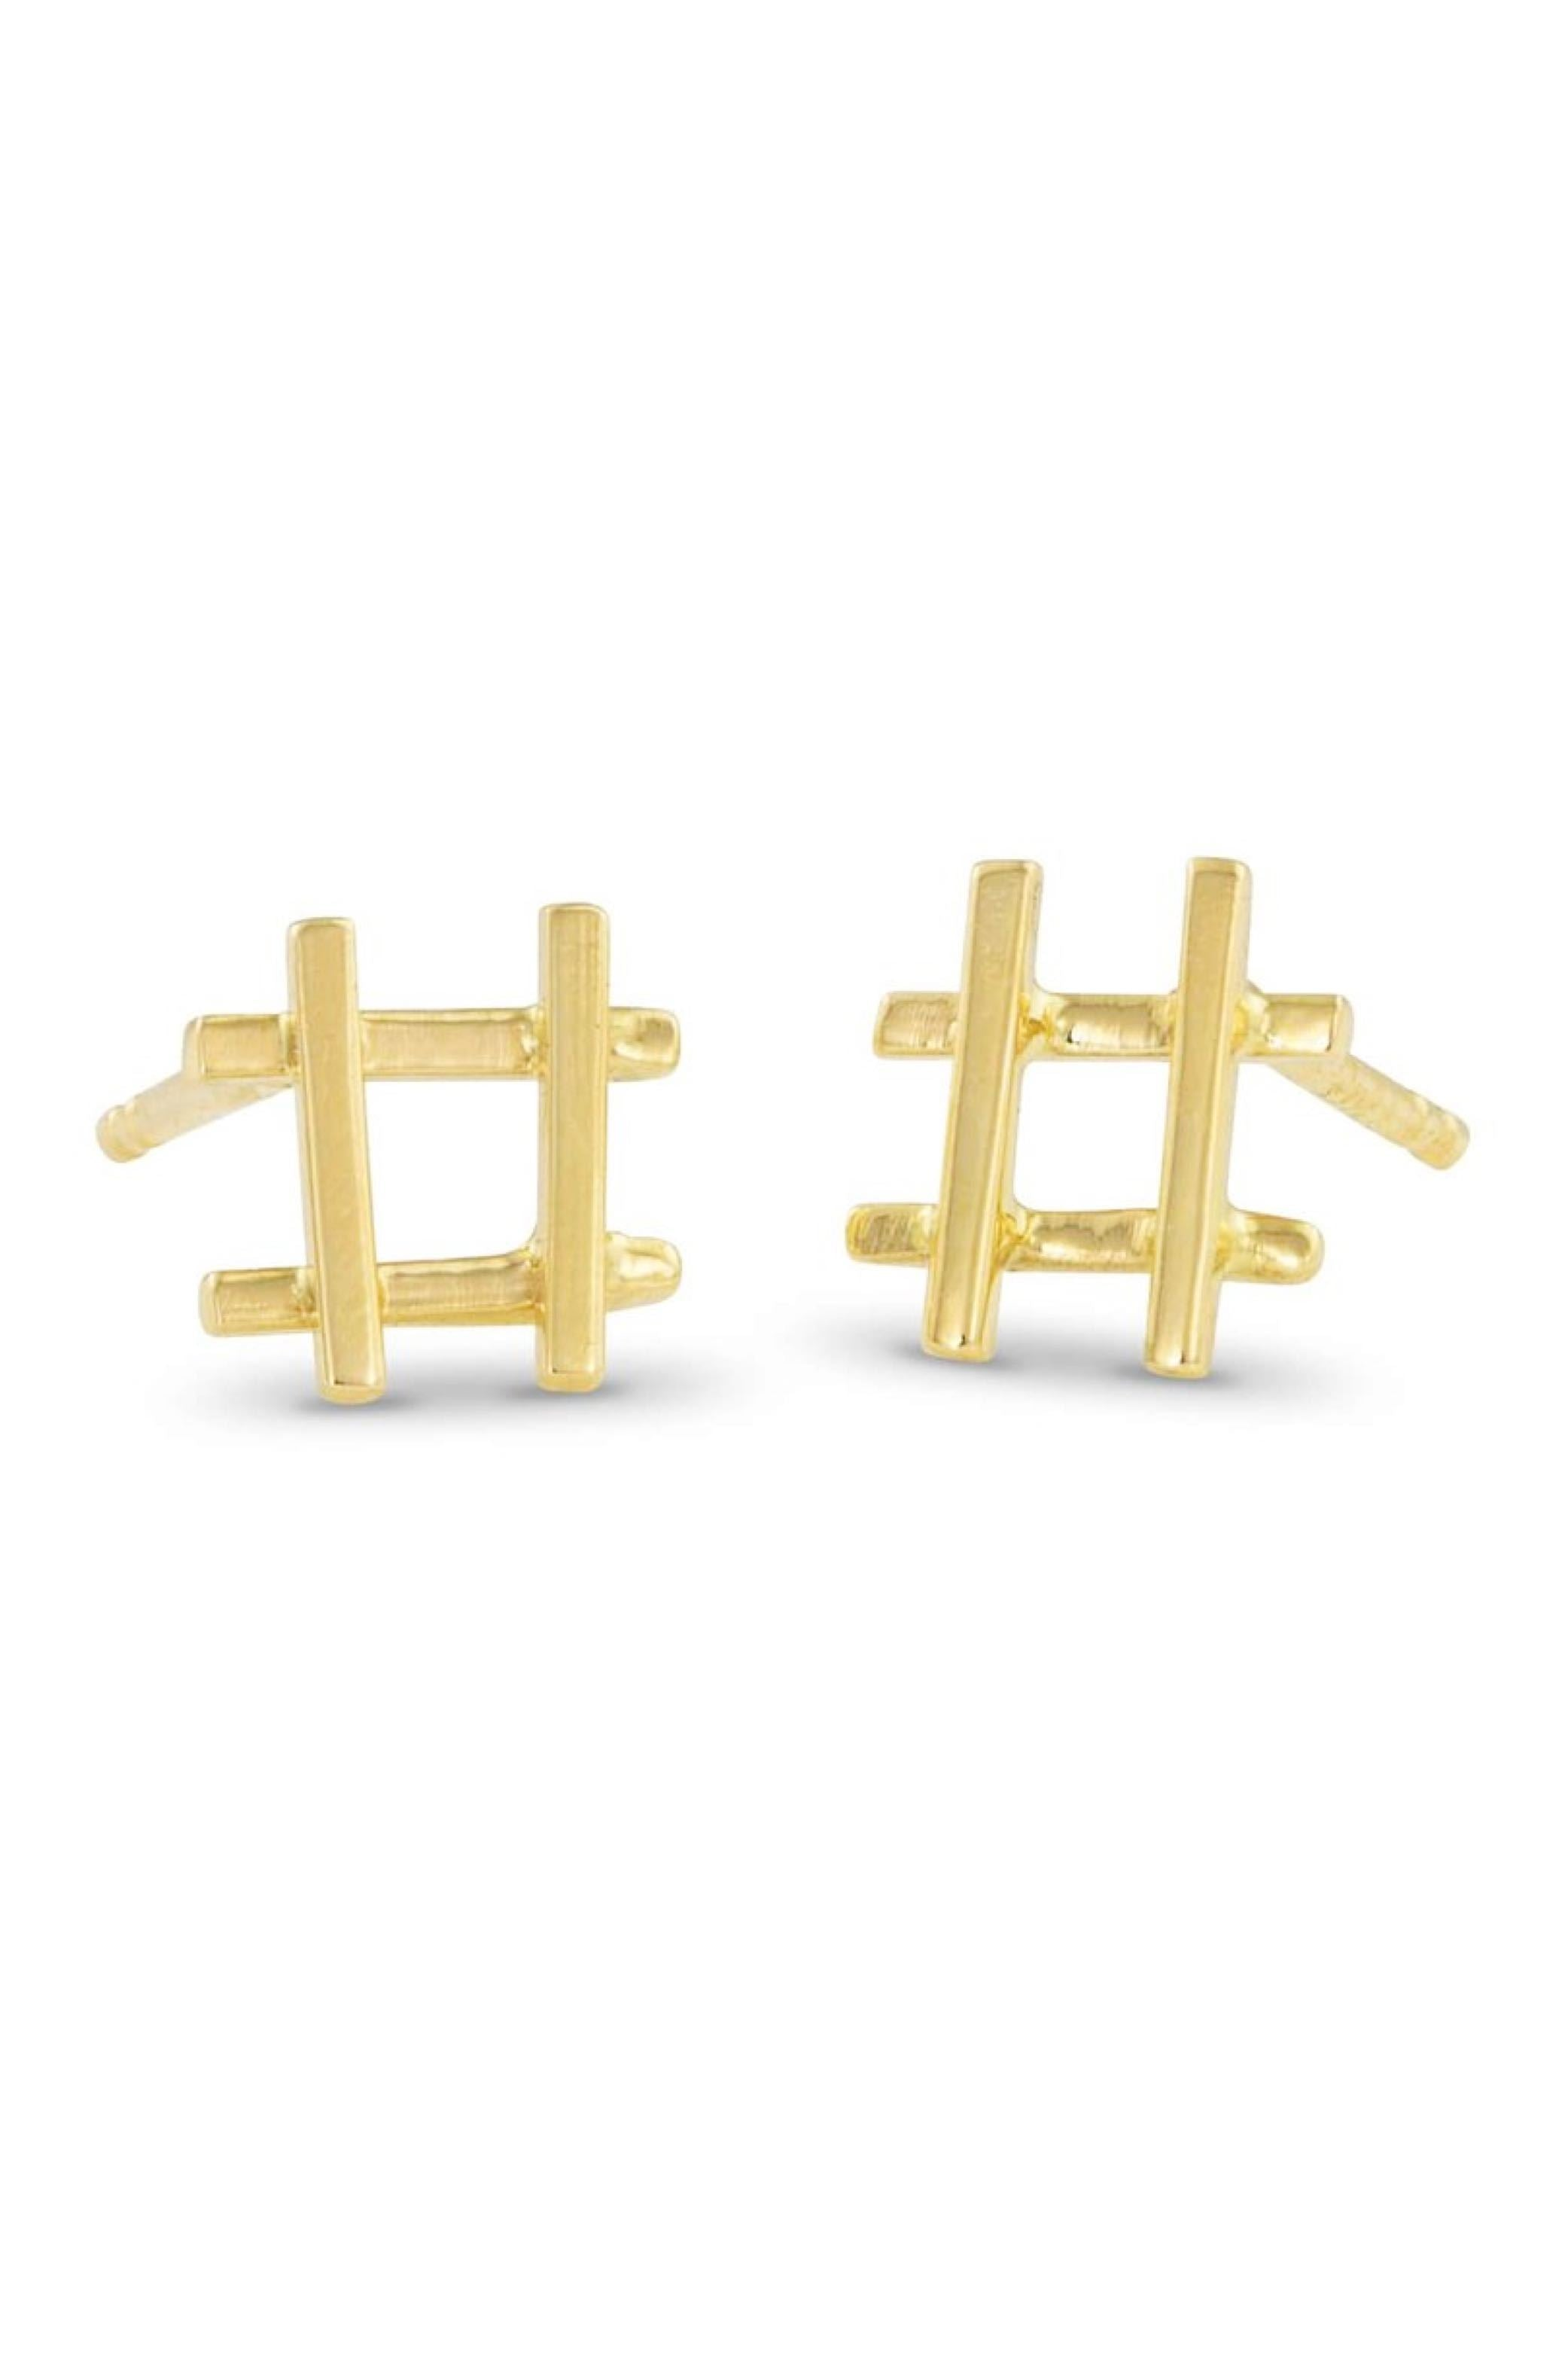 Gold Hashtag Earrings